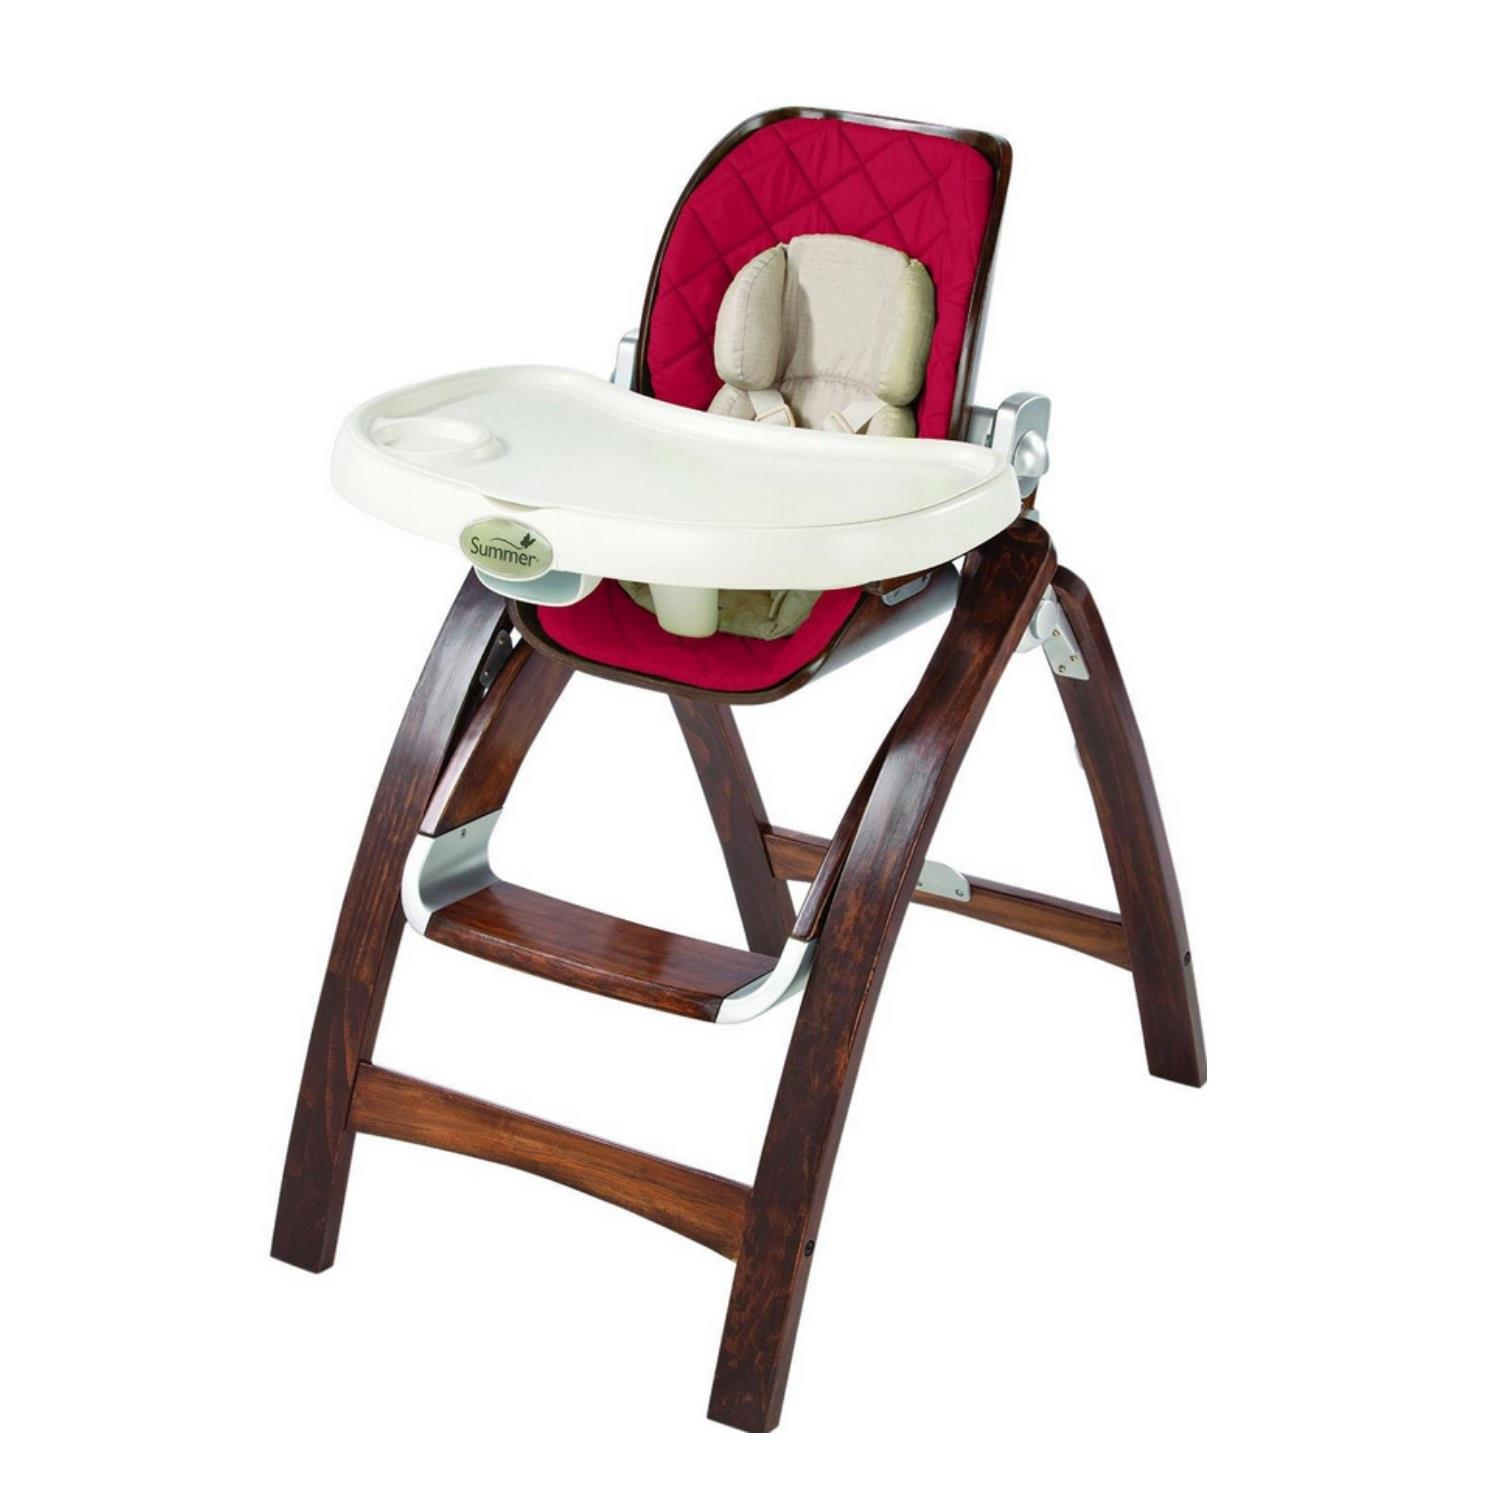 Bentwood High Chair - Cranberry